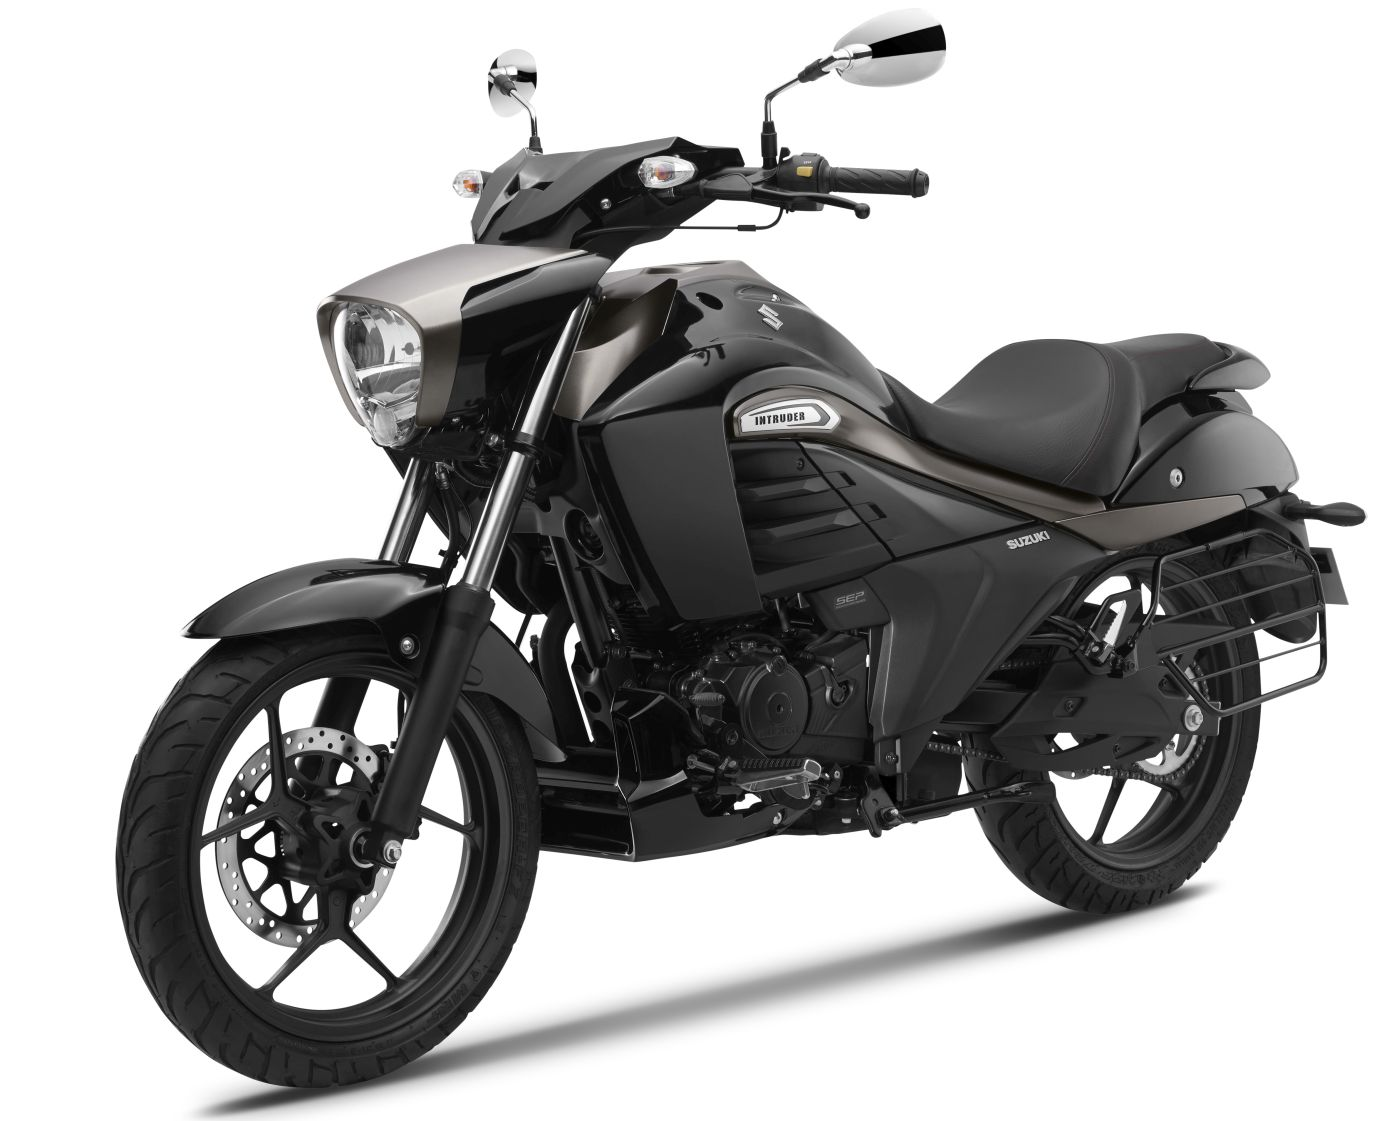 Suzuki 155cc Intruder - The Cruiser bike launched in India, Price Rs